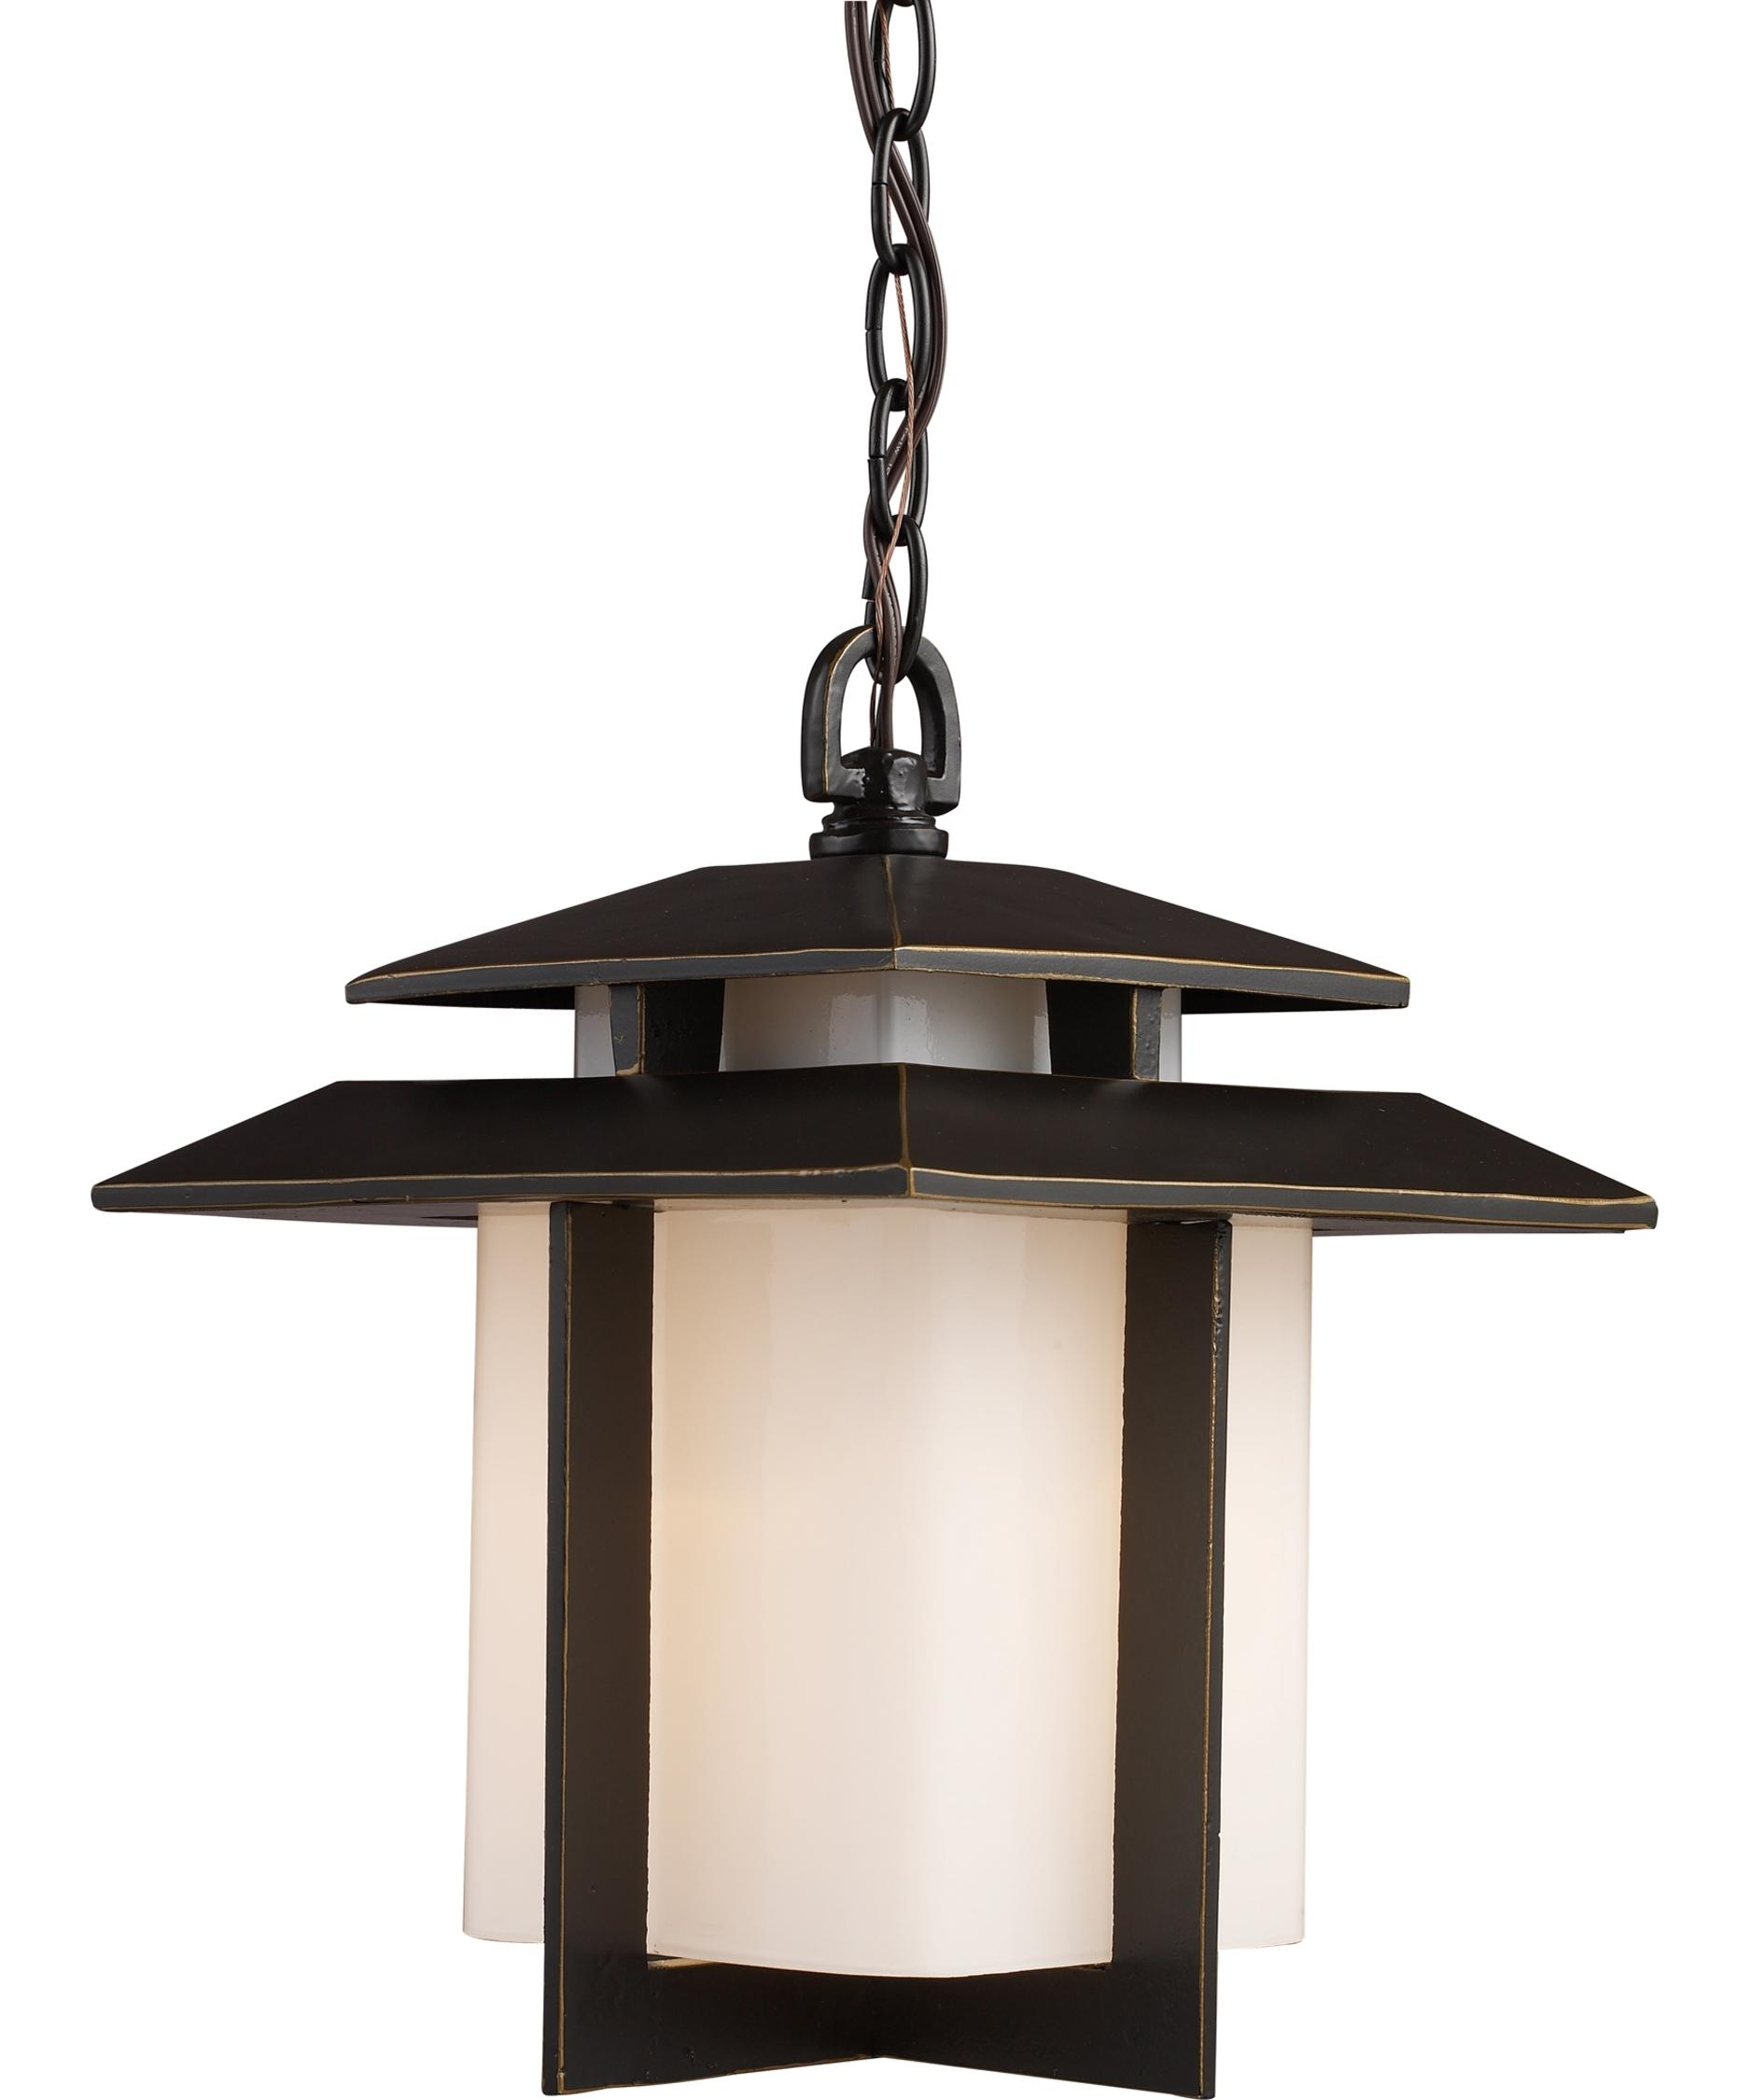 Light : Outdoor Lighting Ideas Without Electricity Exterior Fixtures In Outdoor Hanging Lanterns At Lowes (View 12 of 15)